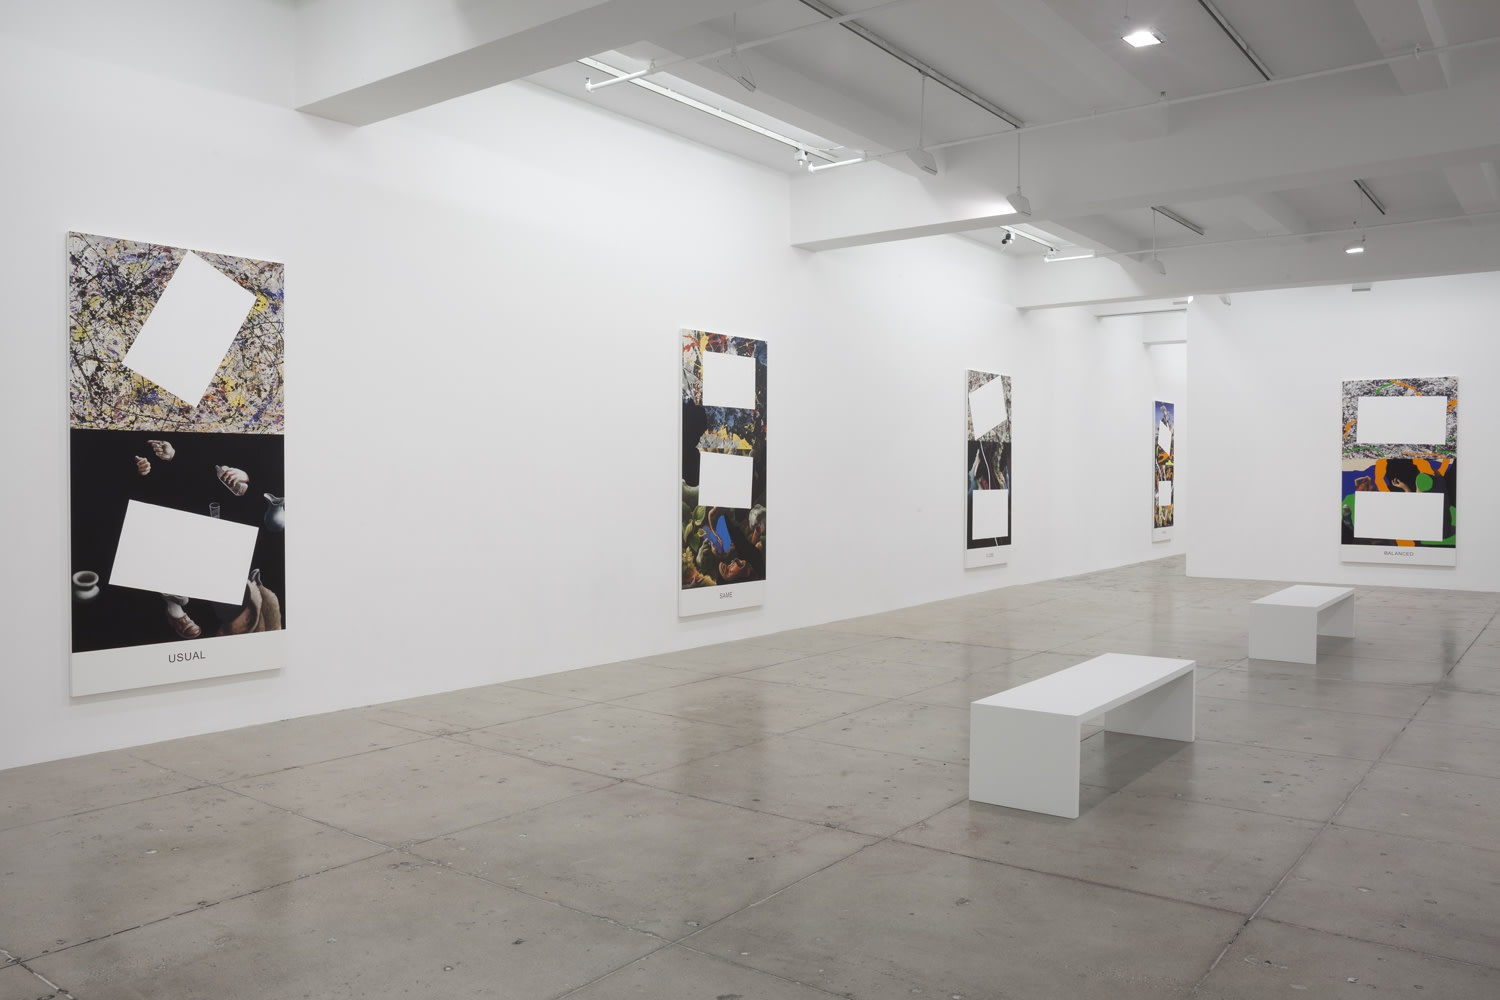 5 paintings partially covered with white rectangles hanging in a gallery space with 2 white benches.